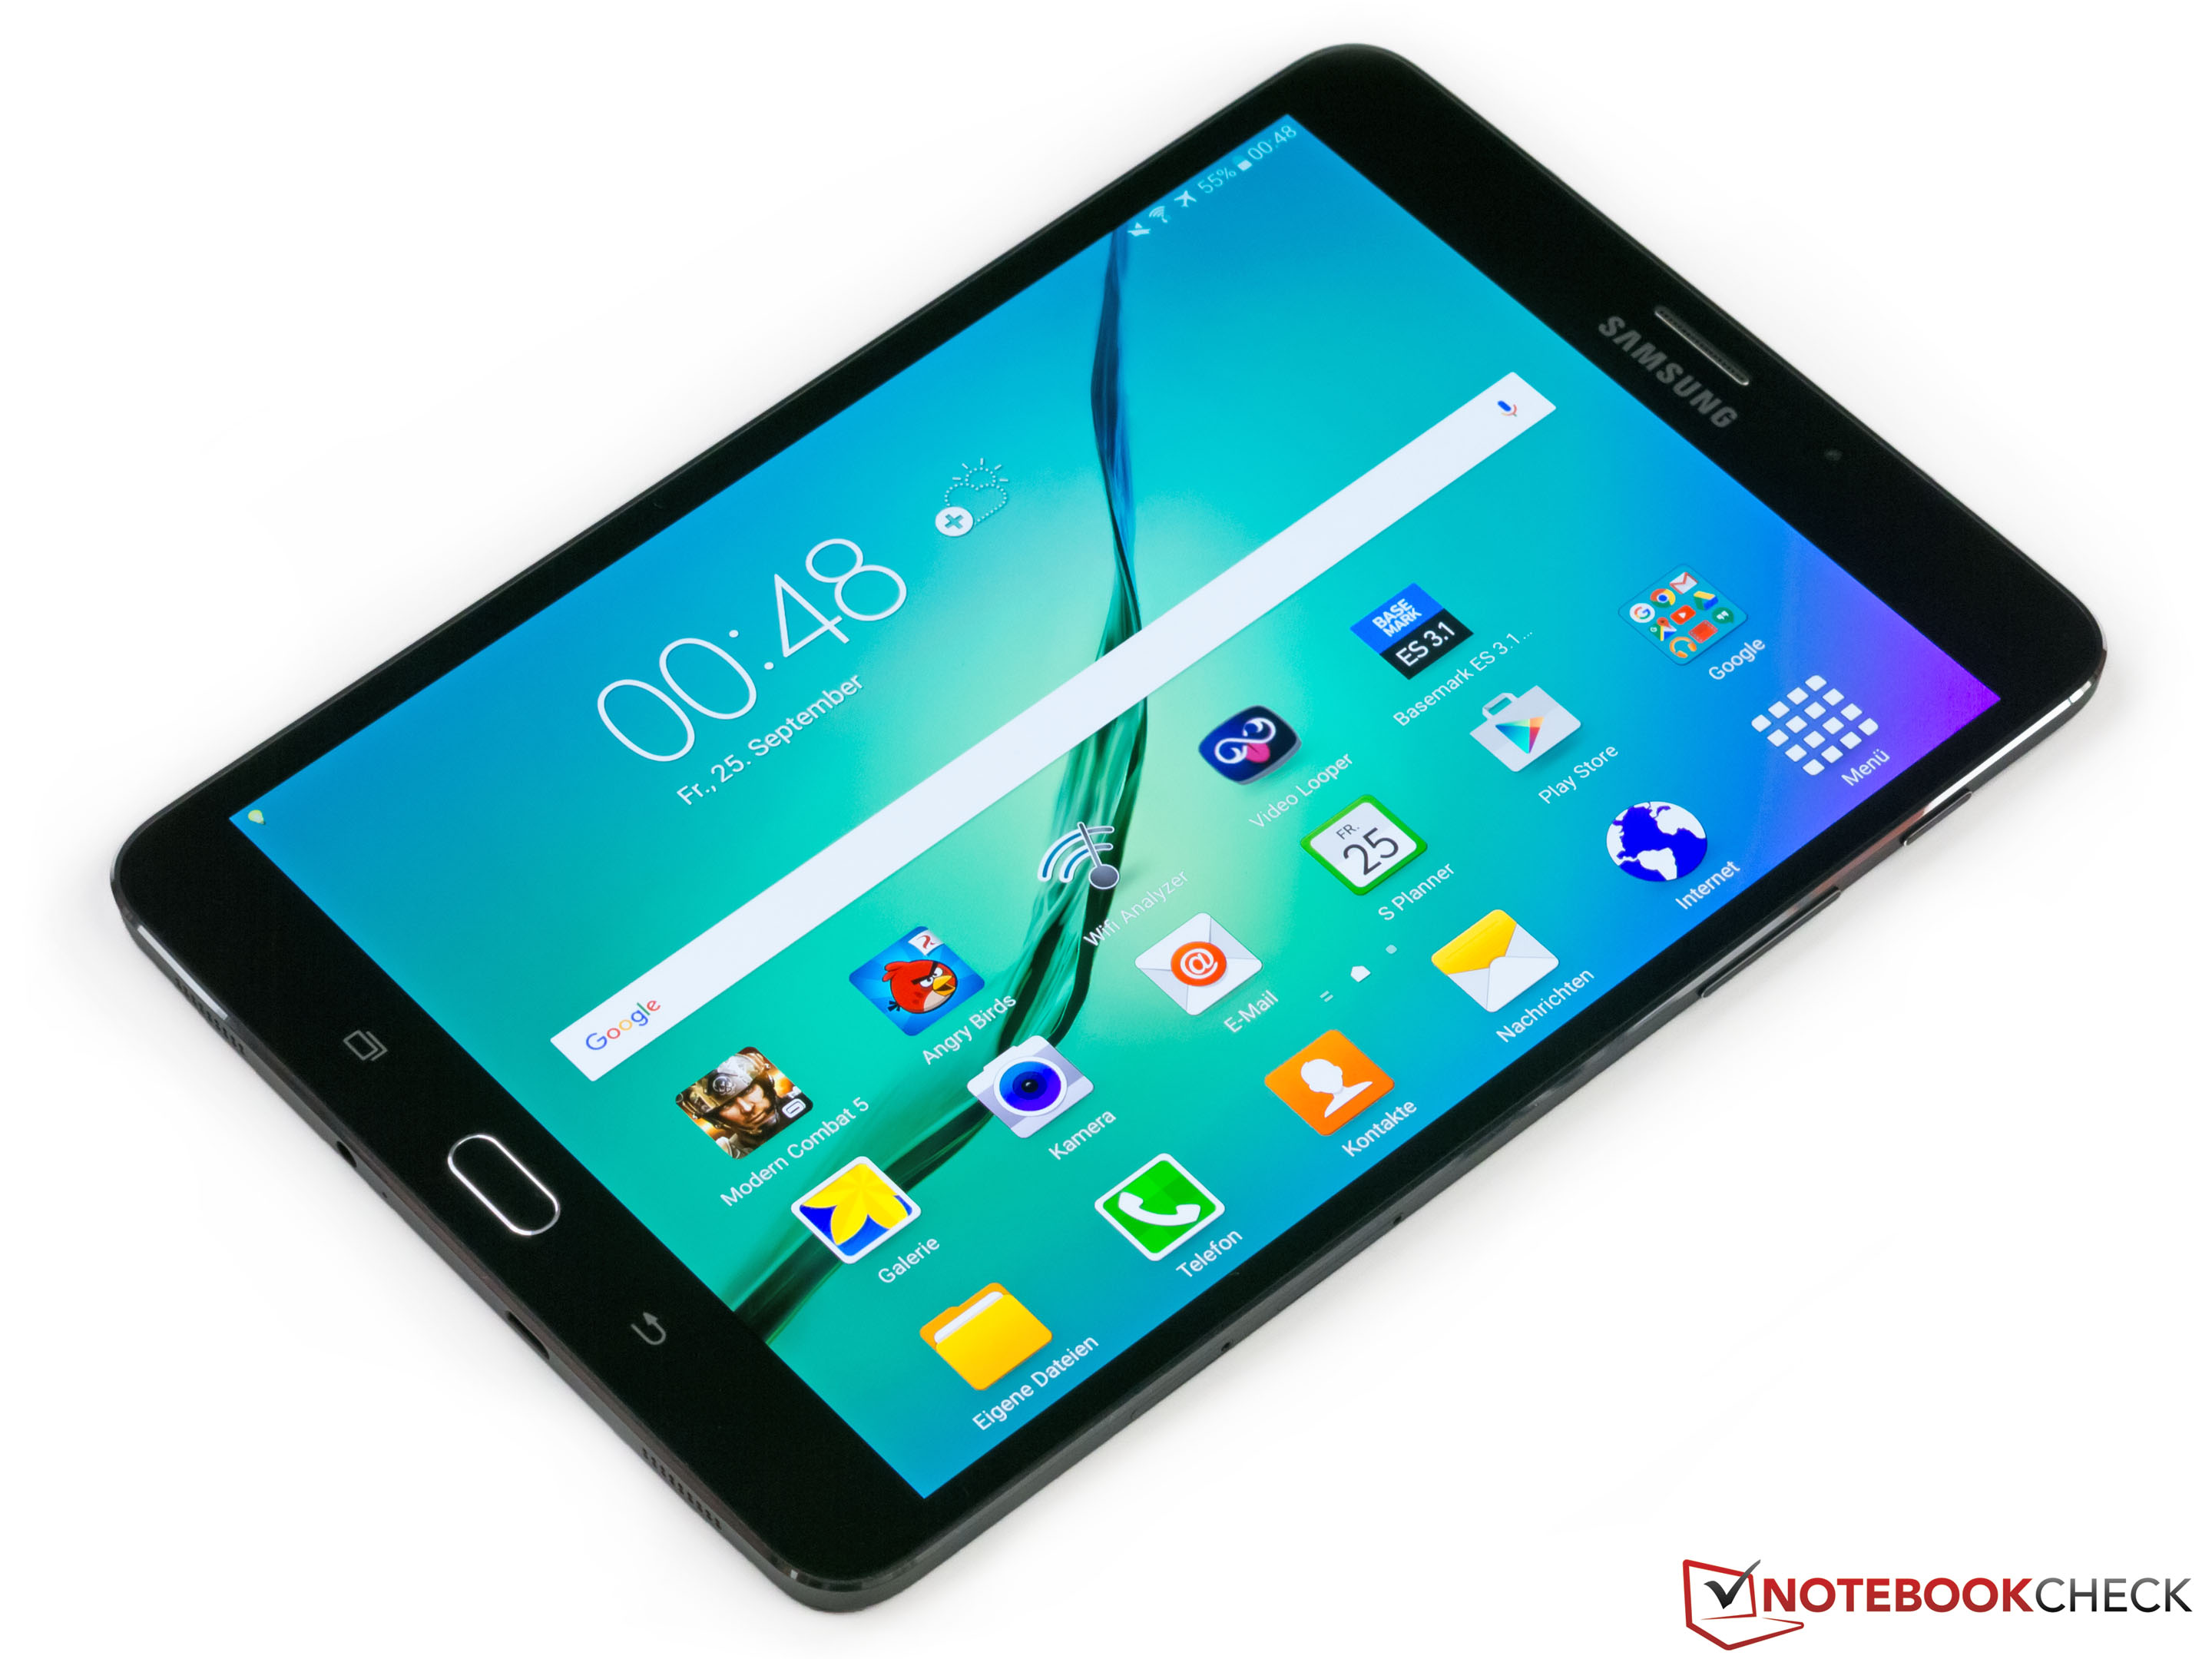 Samsung Galaxy Tab S2 8 0 LTE Tablet Review - NotebookCheck